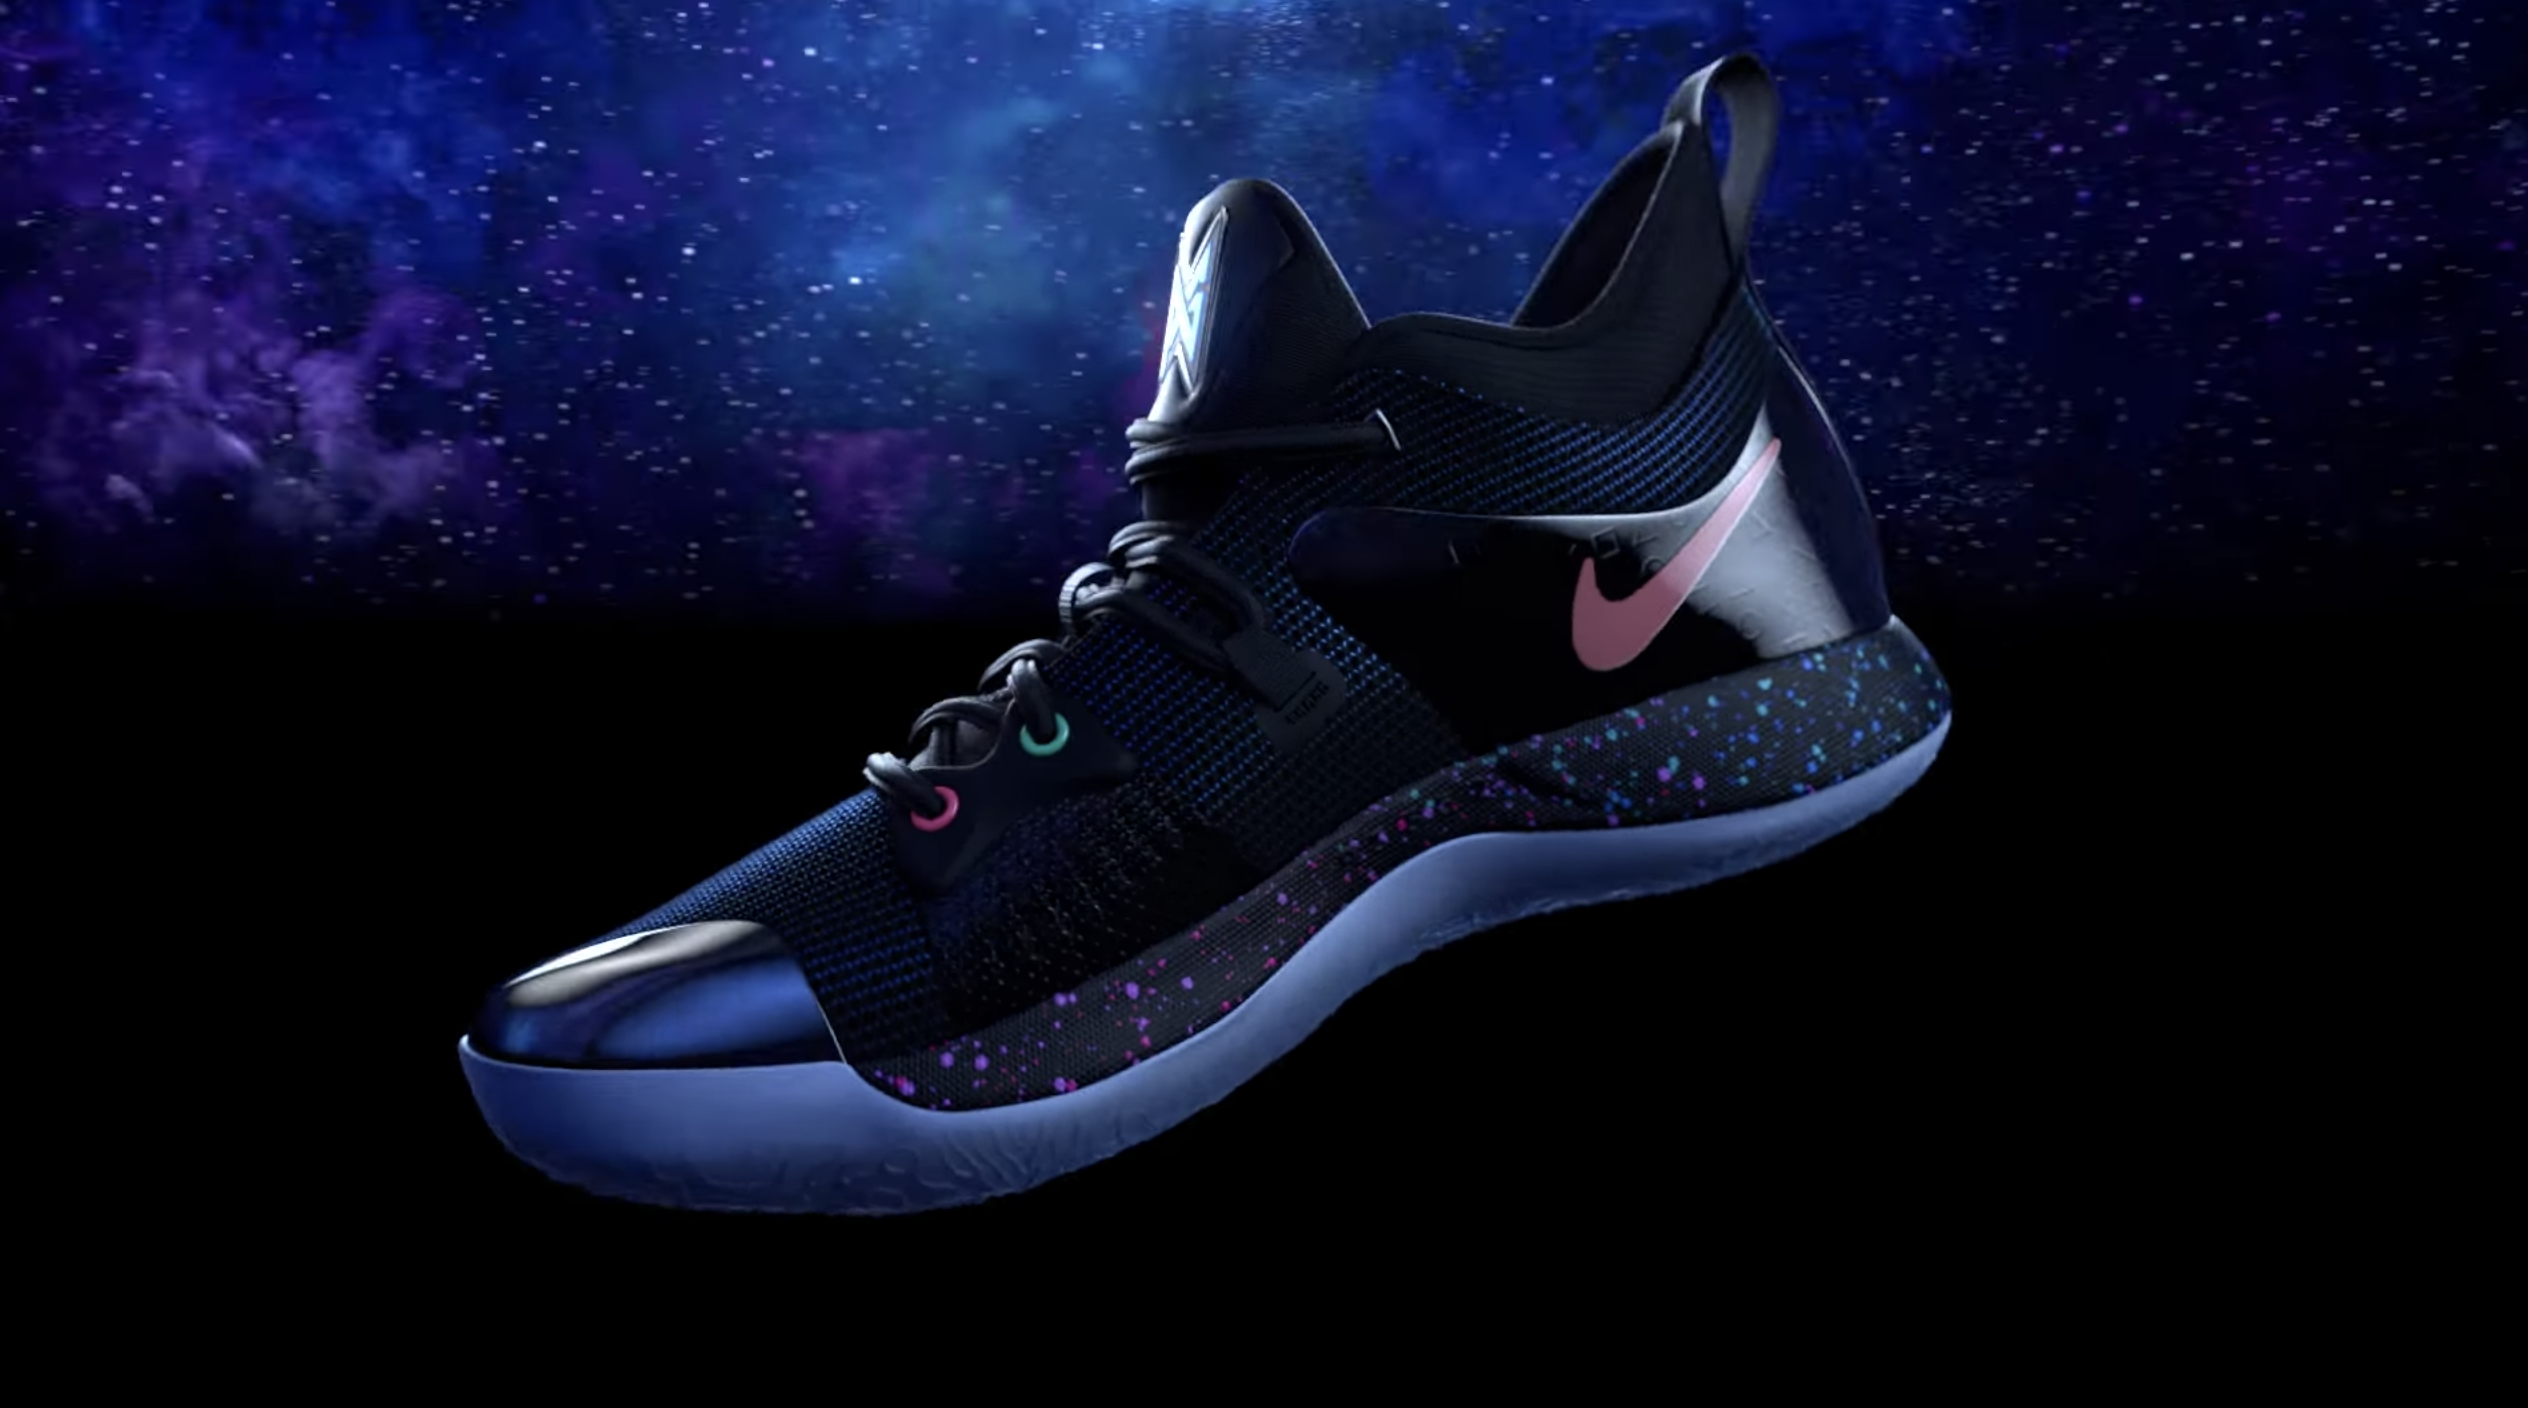 Ford Mustang Shoes >> Playstation Shoes: Yep - that's a thing. Paul George & Nike make a PS4 Themed sneaker » EFTM